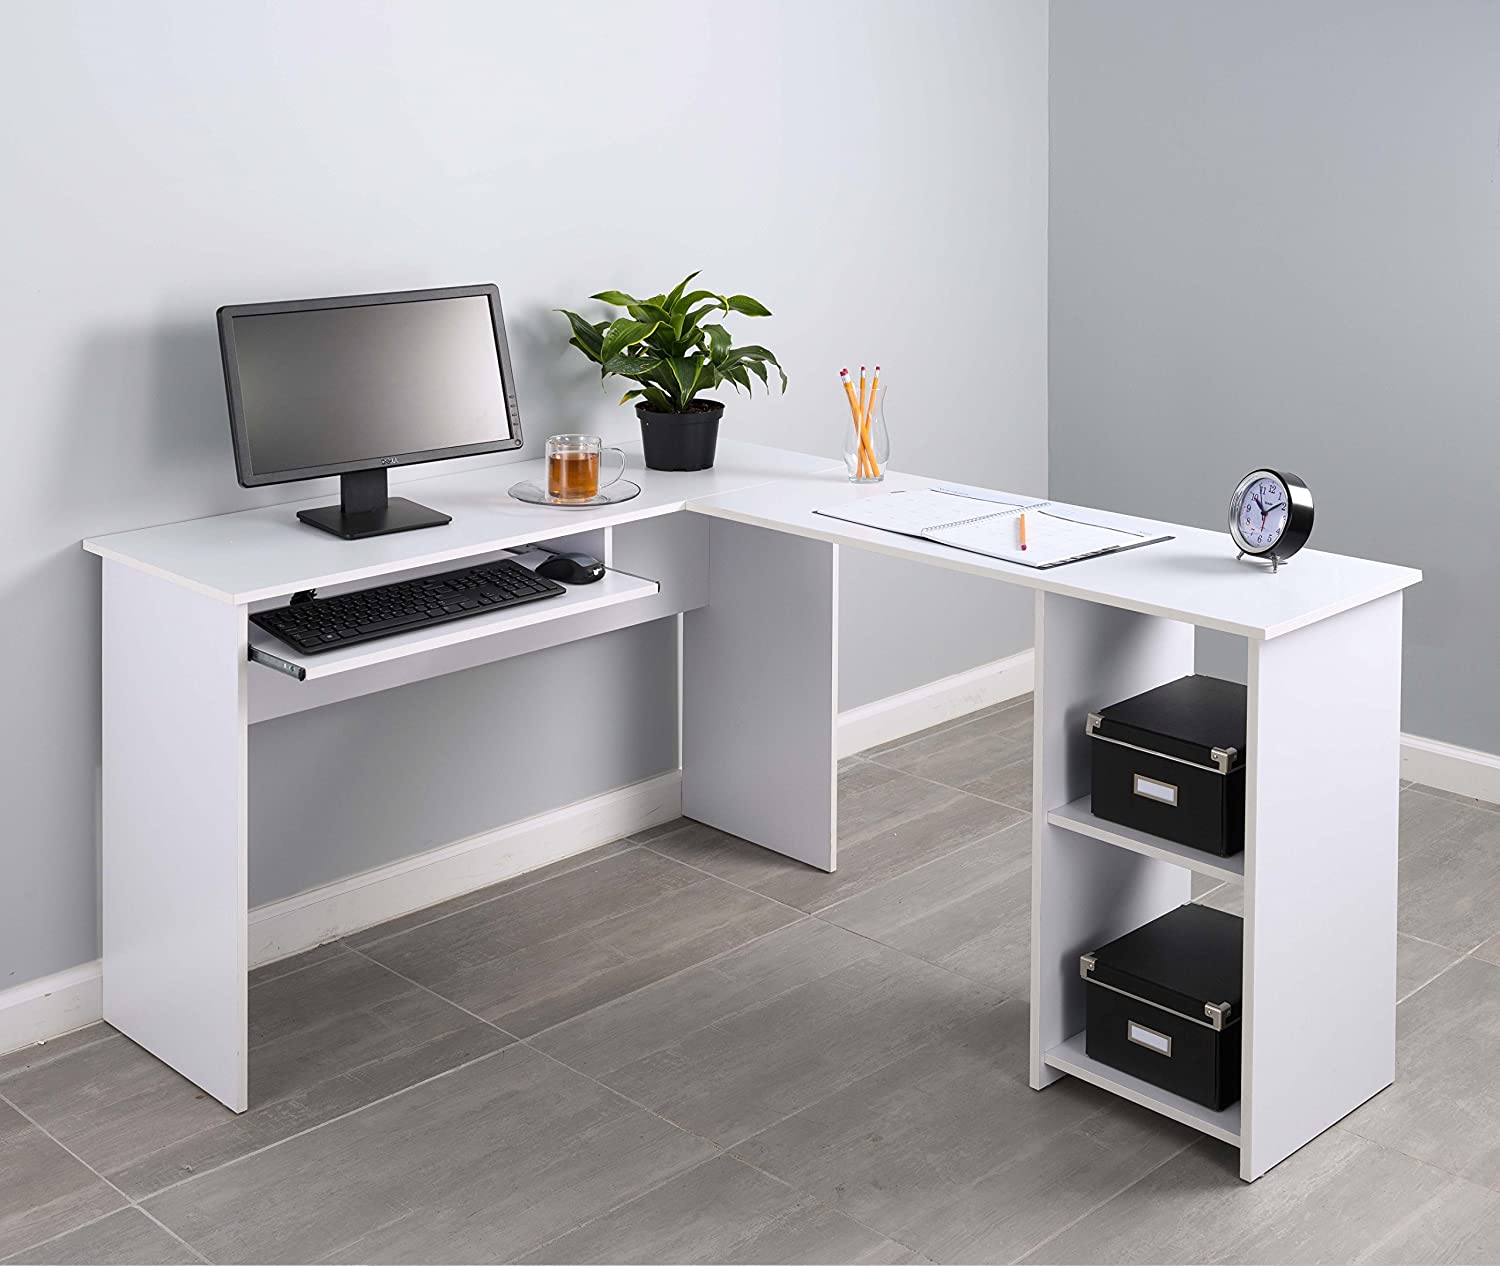 office shape image amazing ga shaped table desk fascinating hutch l cosmopolitan then ideas design picturesque